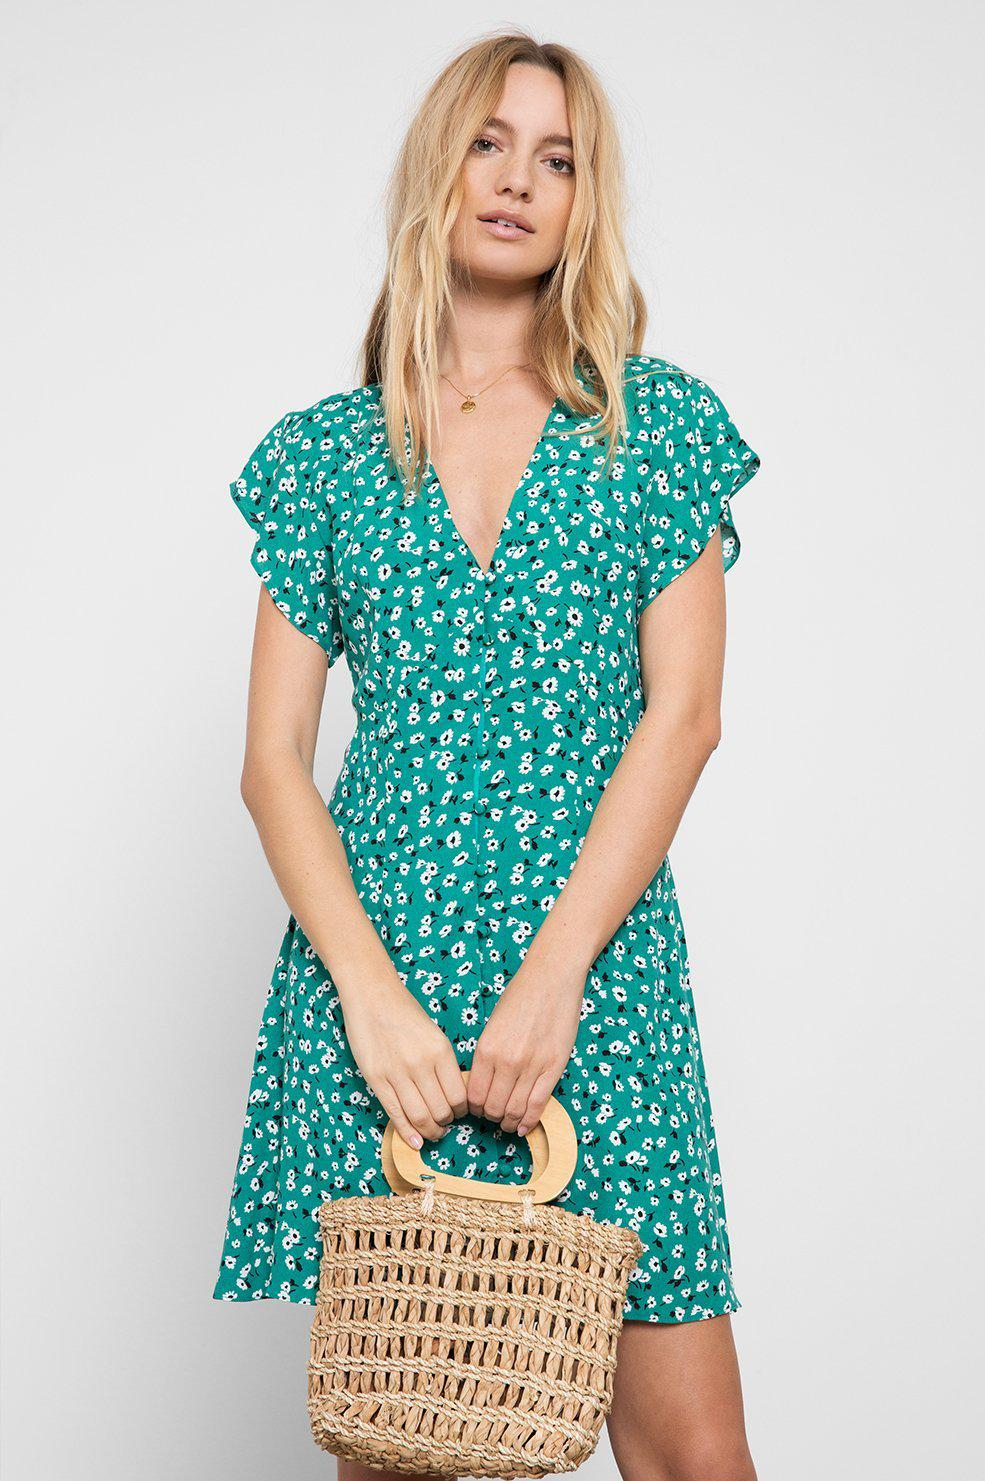 RAILS CLOTHING - Helena Sweet Pea Dress online at PAYA boutique